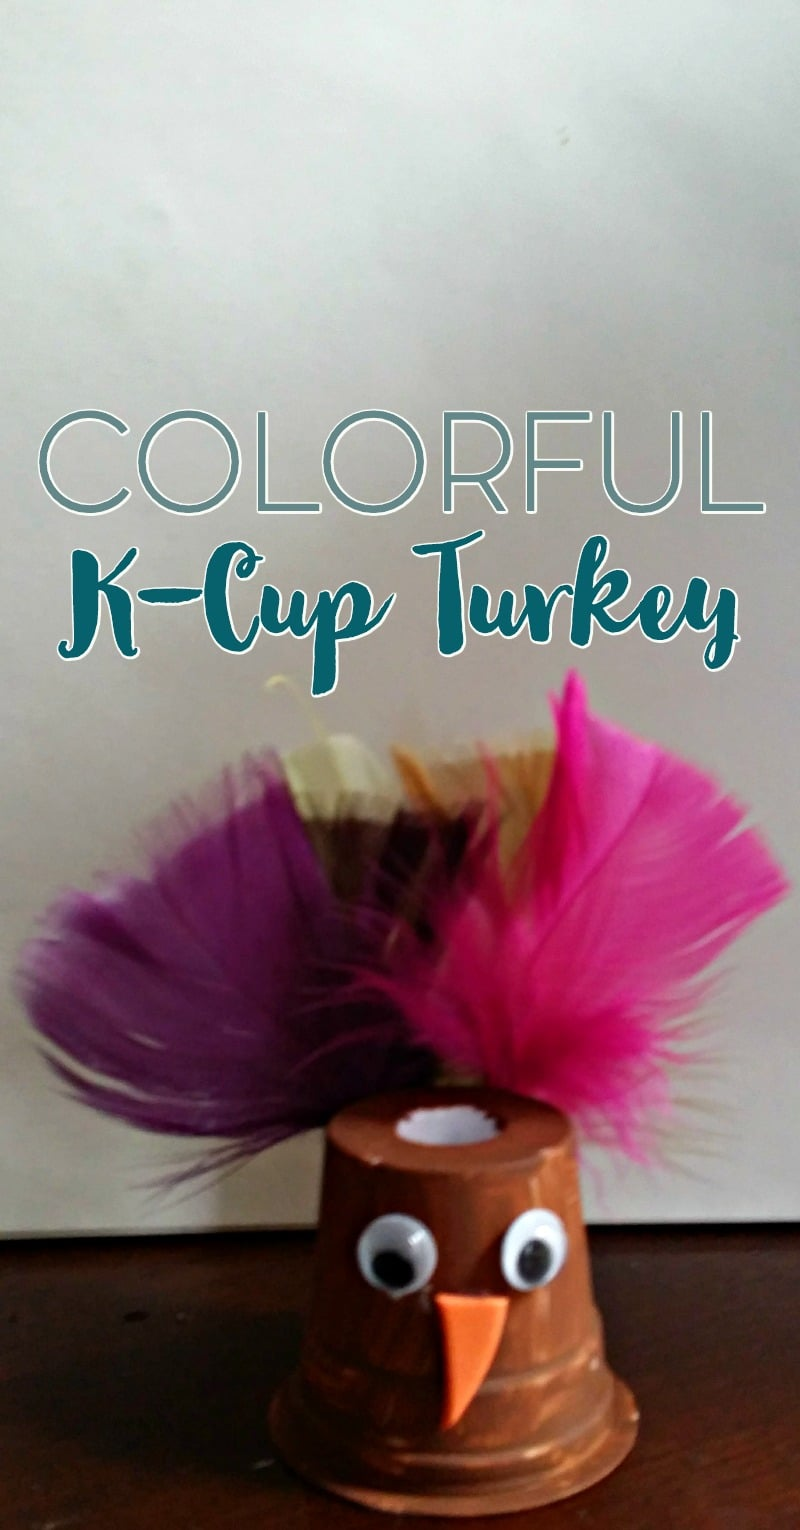 how-to-make-a-colorful-kcup-turkey